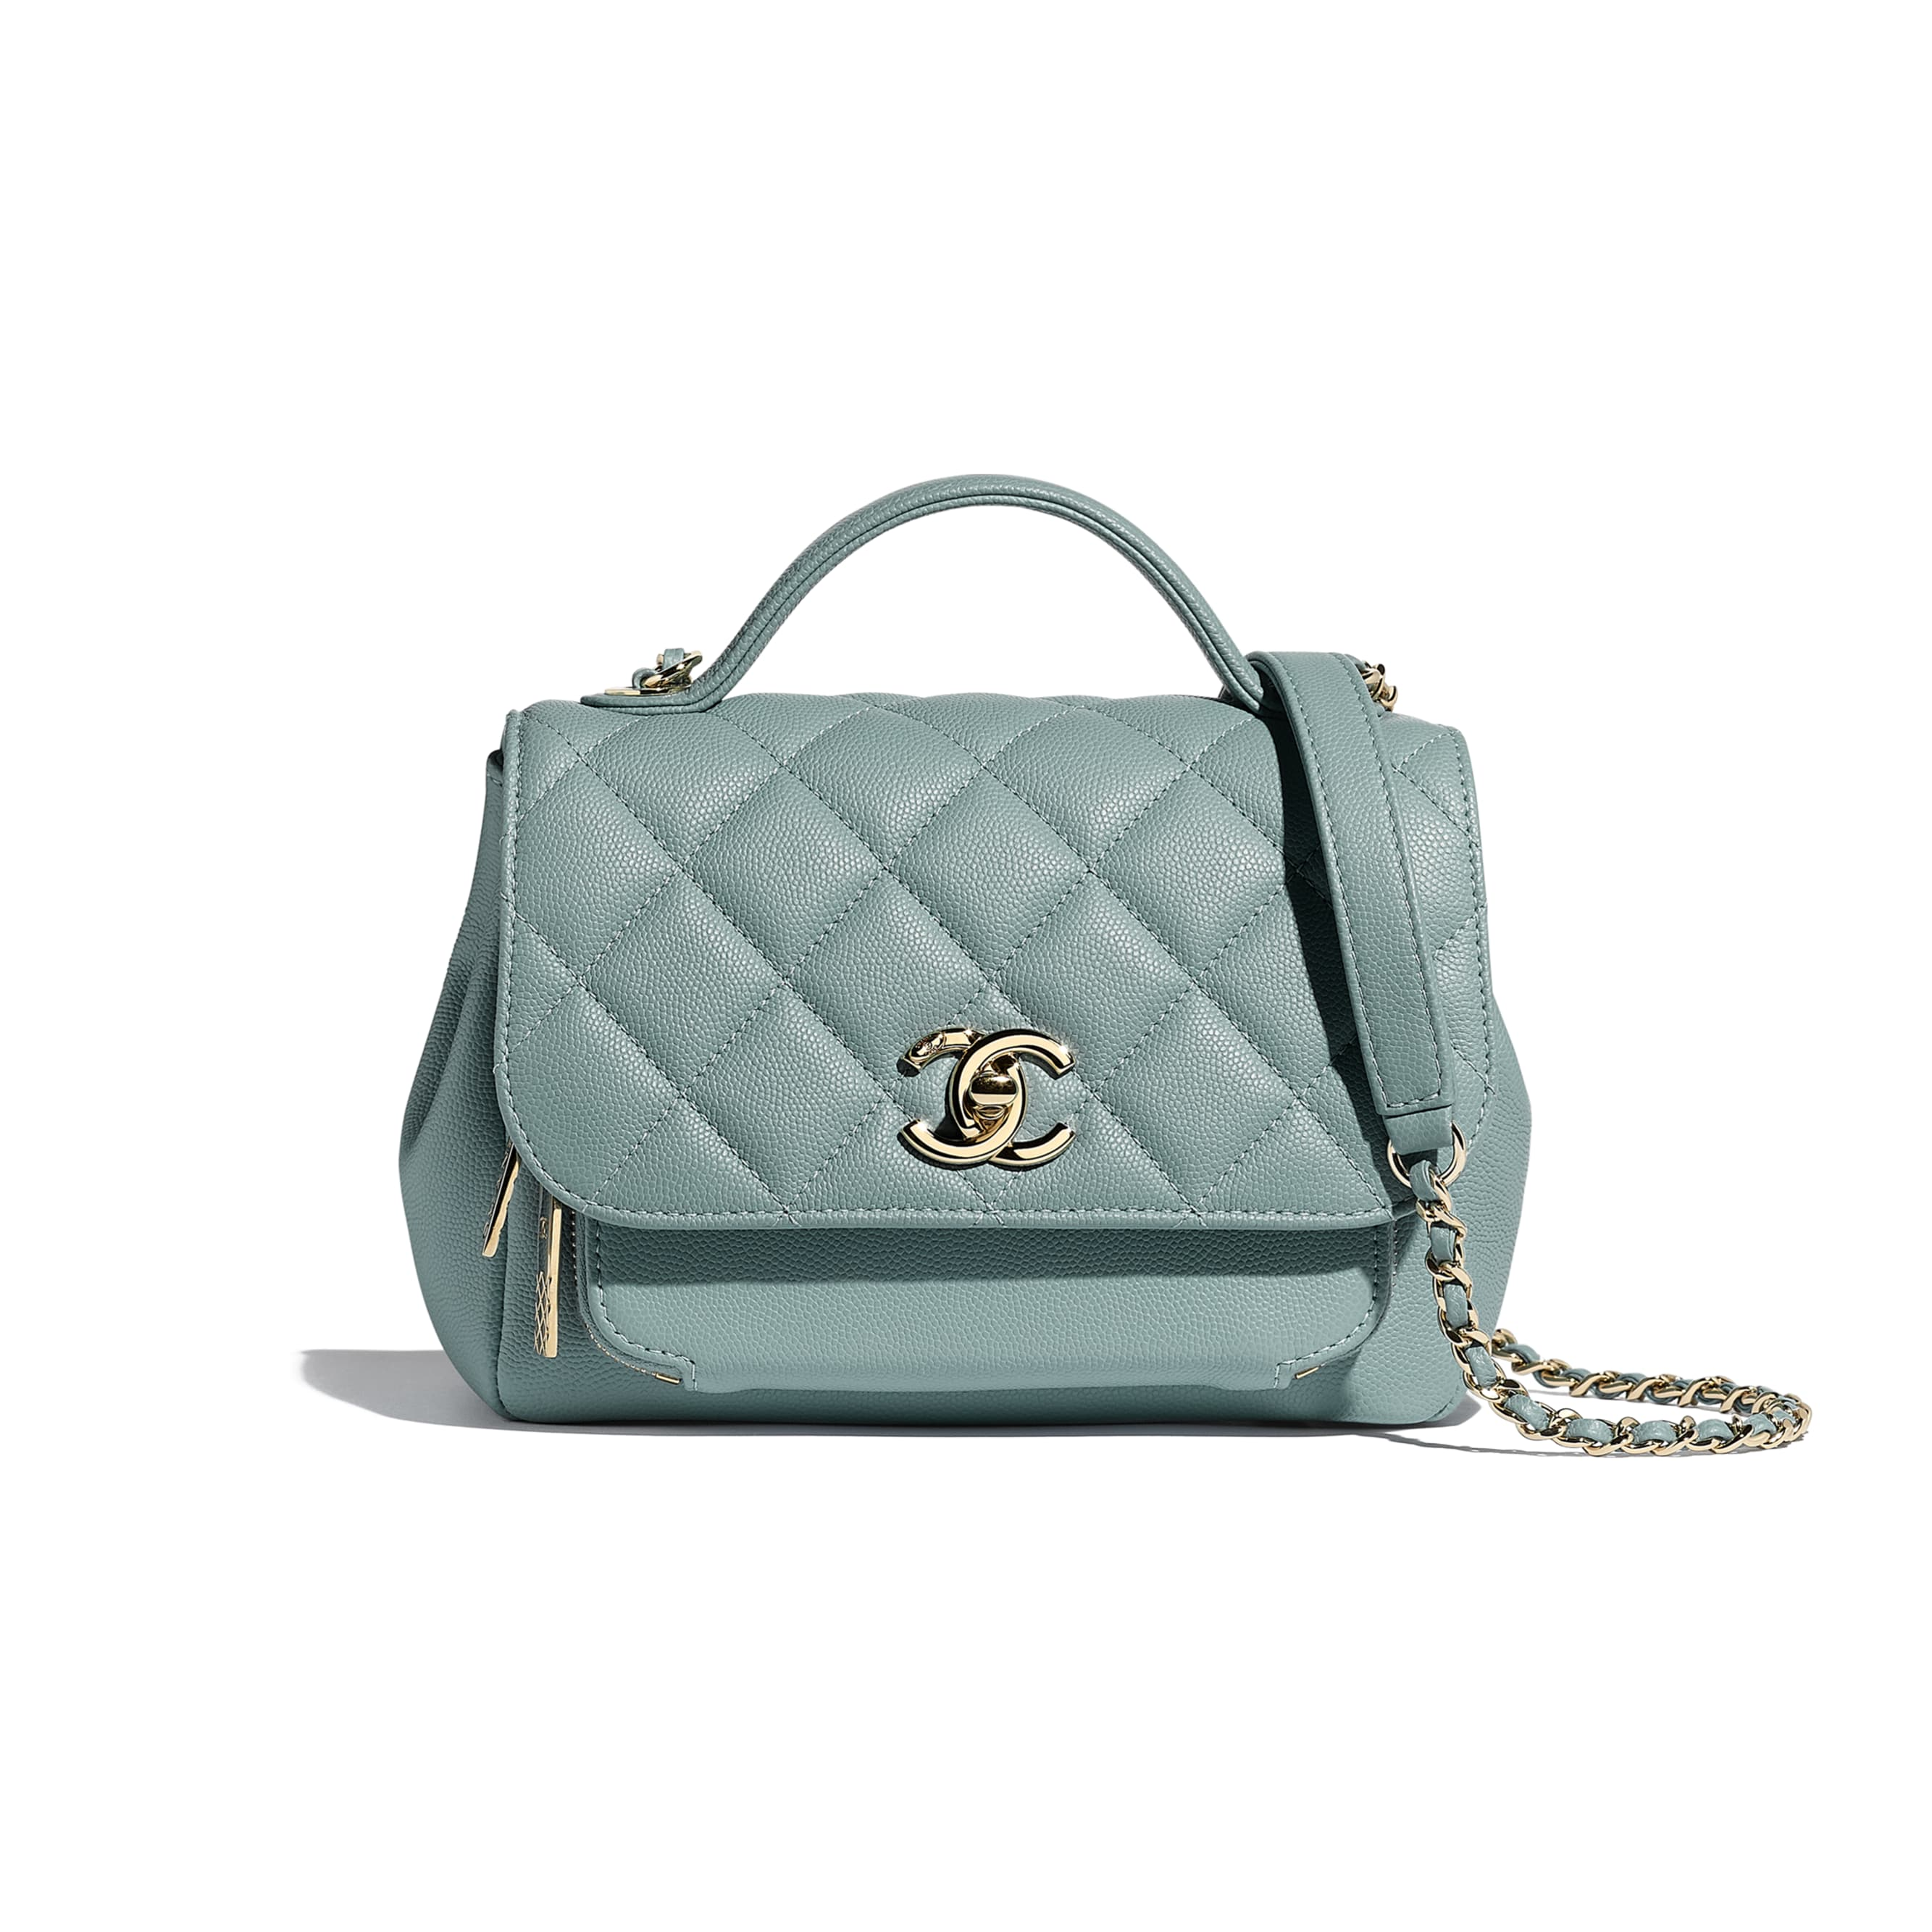 Small Flap Bag With Top Handle - Blue - Grained Calfskin & Gold-Tone Metal - CHANEL - Default view - see standard sized version